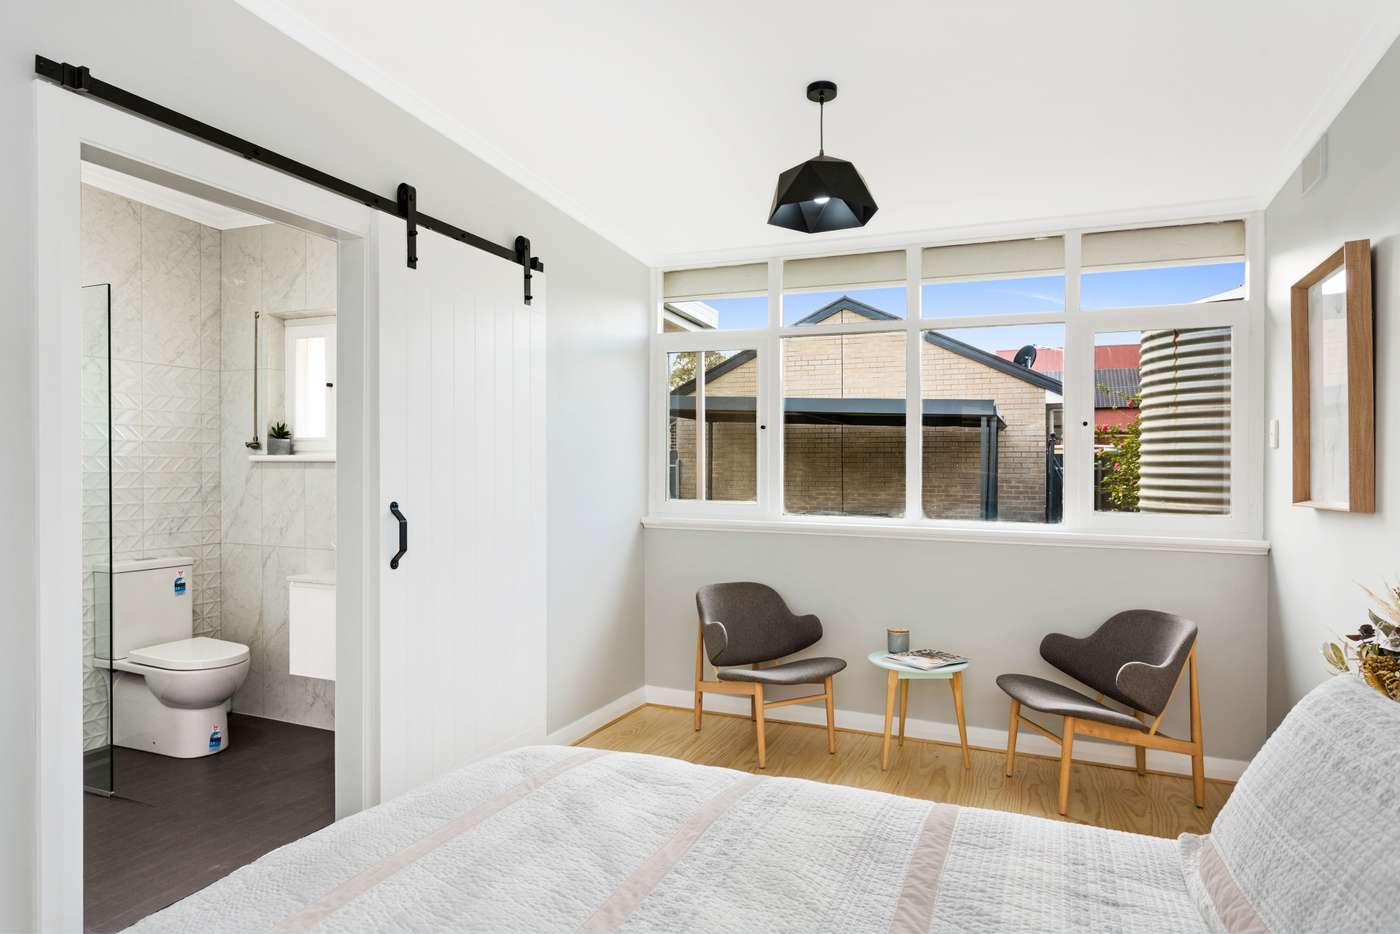 Sixth view of Homely house listing, 63A May Street, Woodville West SA 5011